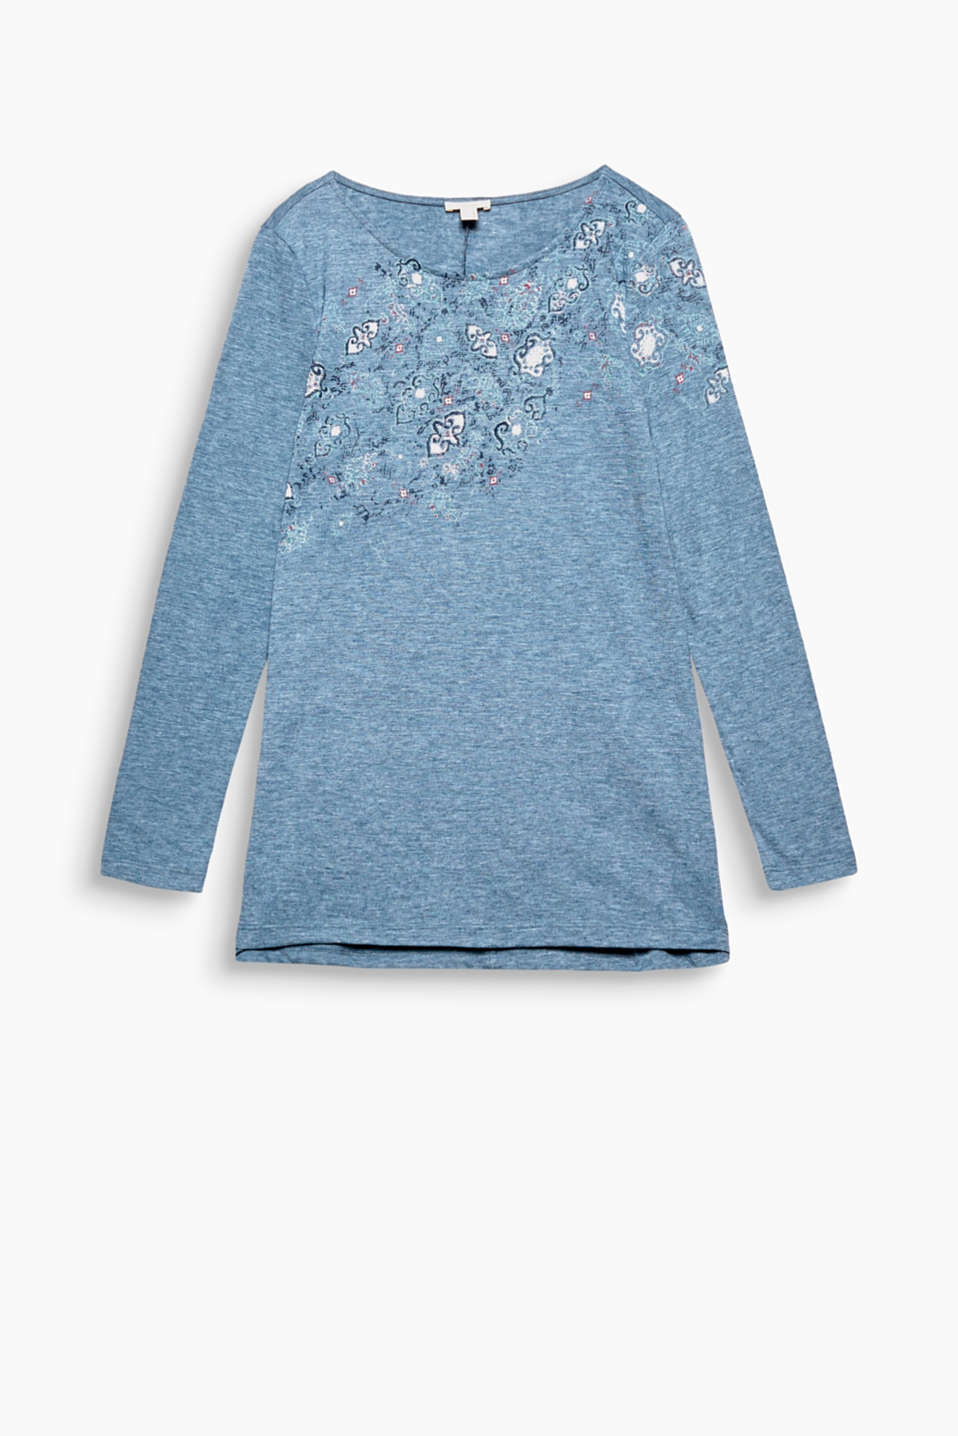 This soft and light, long sleeve slub top with a shiny foil print radiates a flicker of glamour!